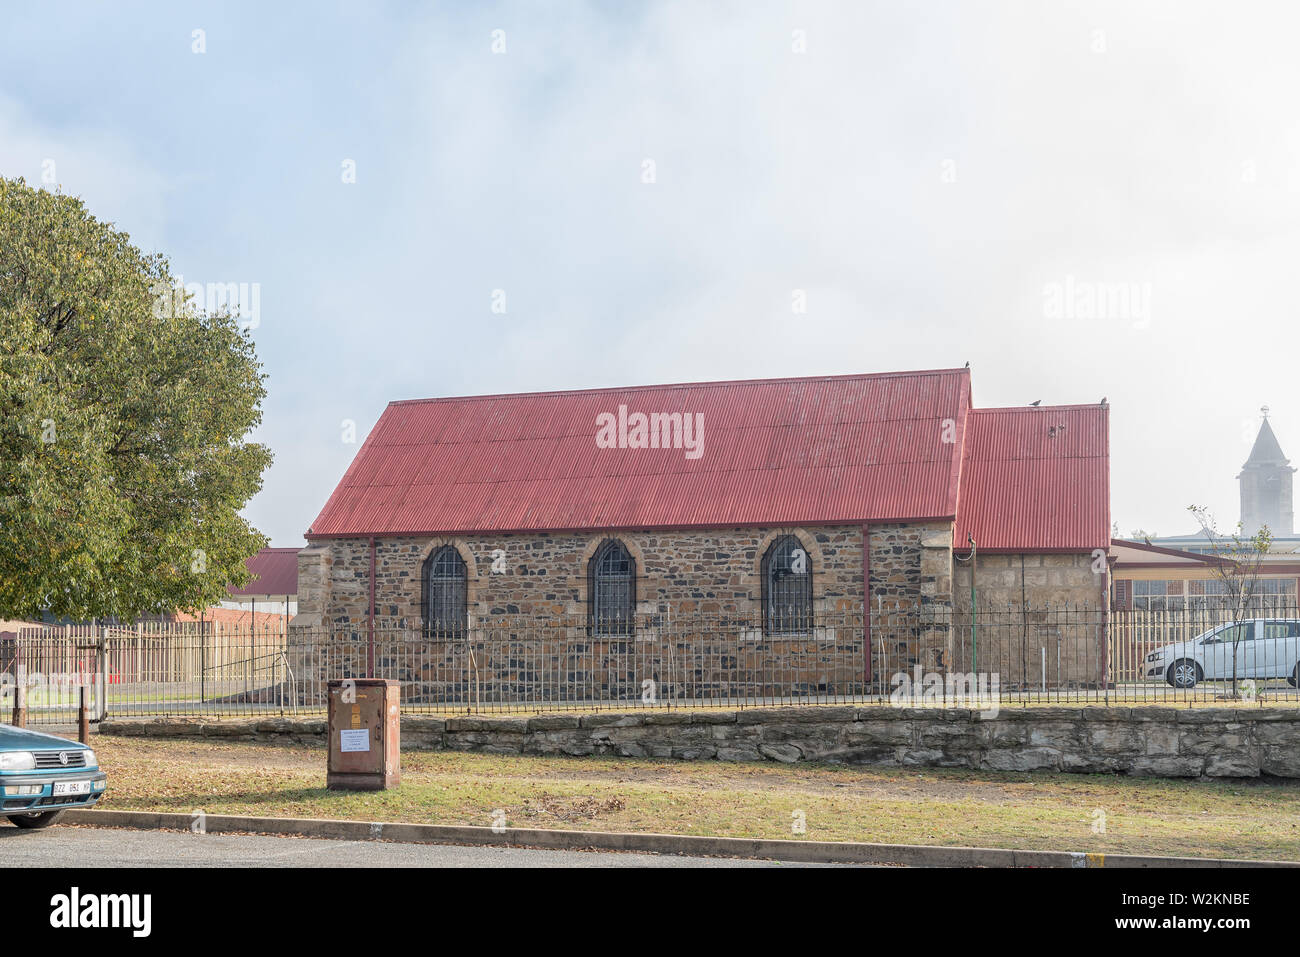 STANDERTON, SOUTH AFRICA - MAY 2, 2019: A Pentecostal Church in Standerton, in the Mpumalanga Province - Stock Image